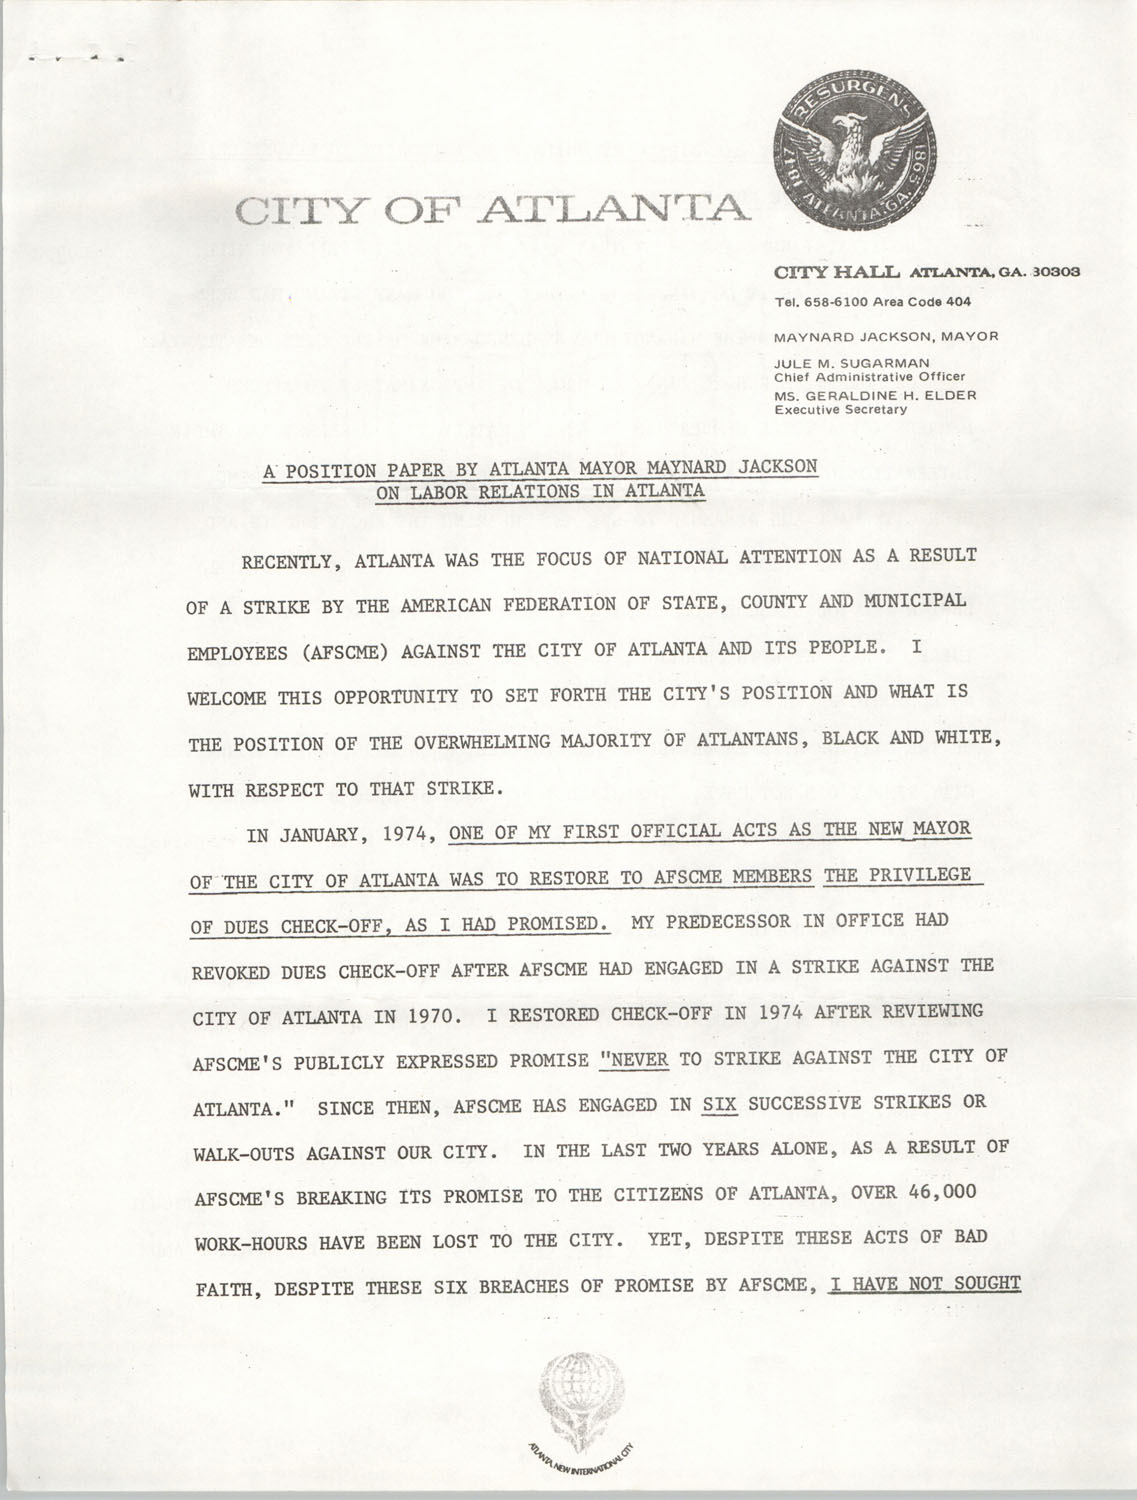 A Position Paper By Atlanta Mayor Maynard Jackson On Labor Relations In Atlanta